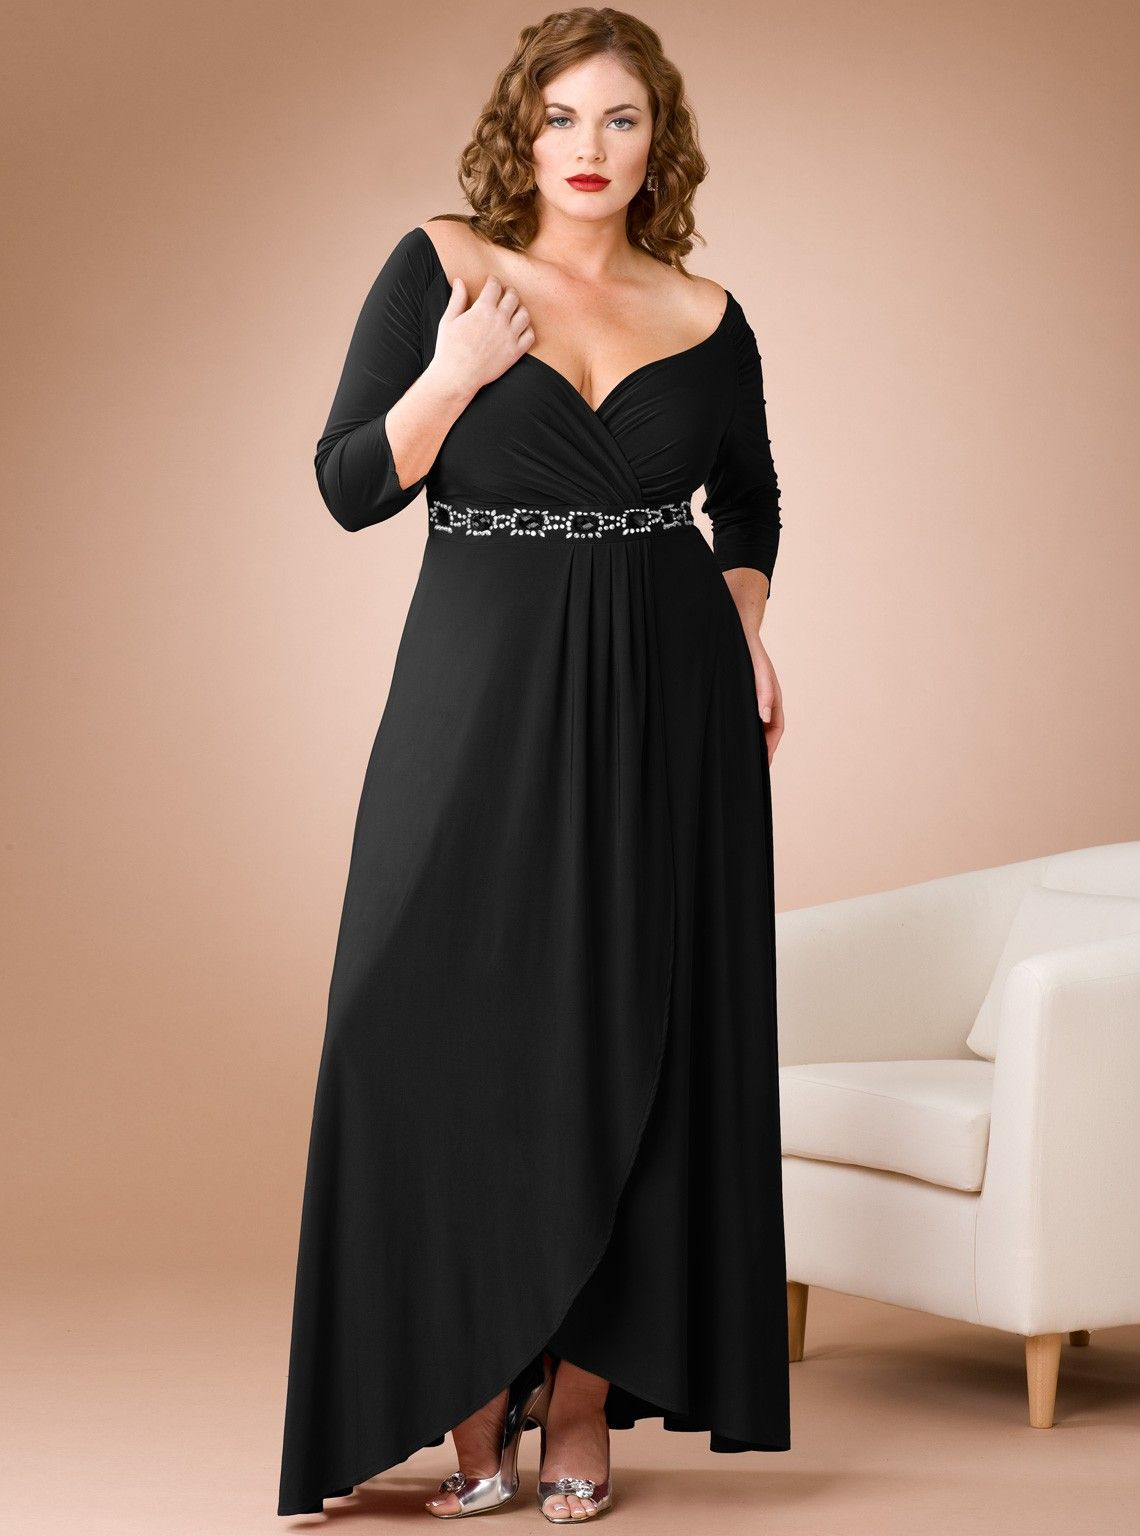 20 plus size evening dresses to look like queen | sleeved dress